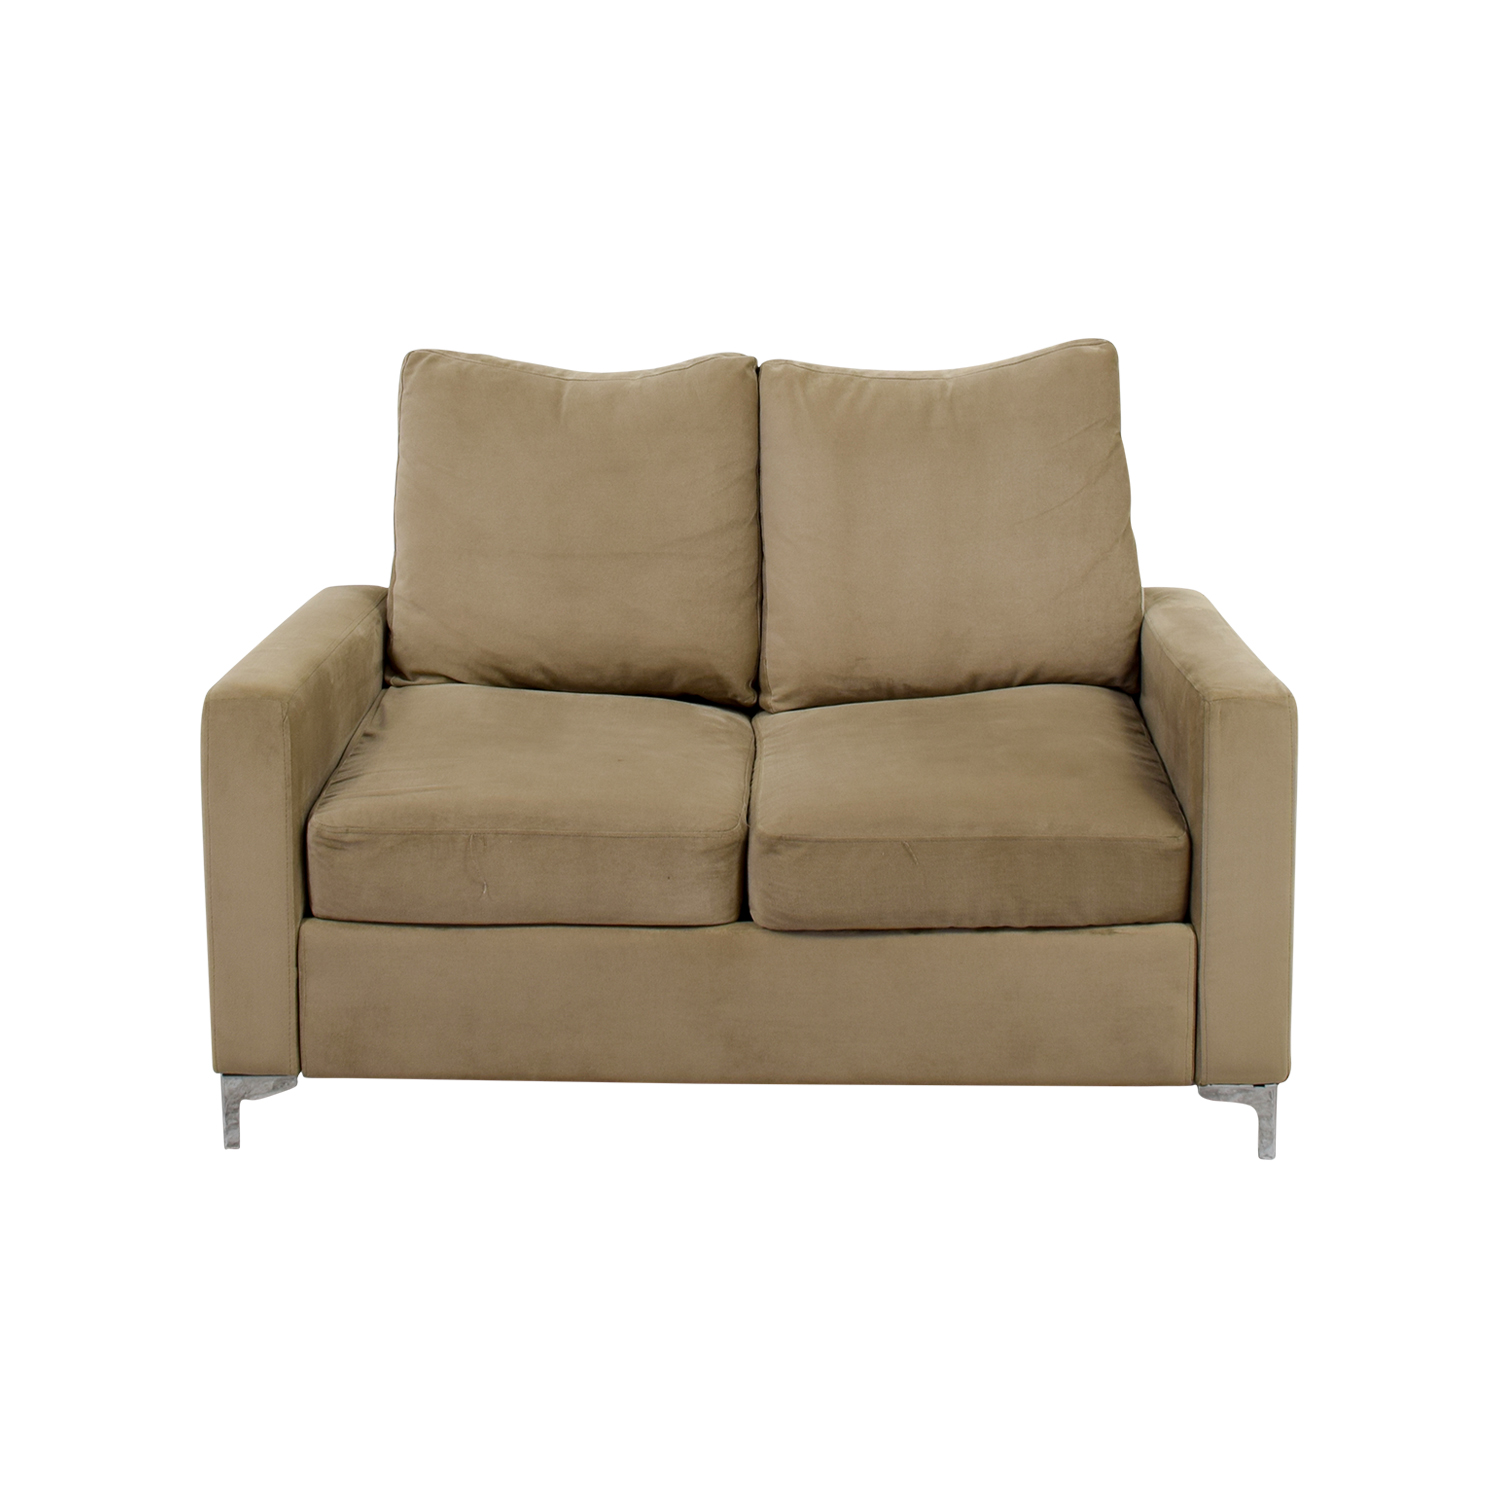 Cream Microfiber Sofa Beige Sofas Couches Fabric